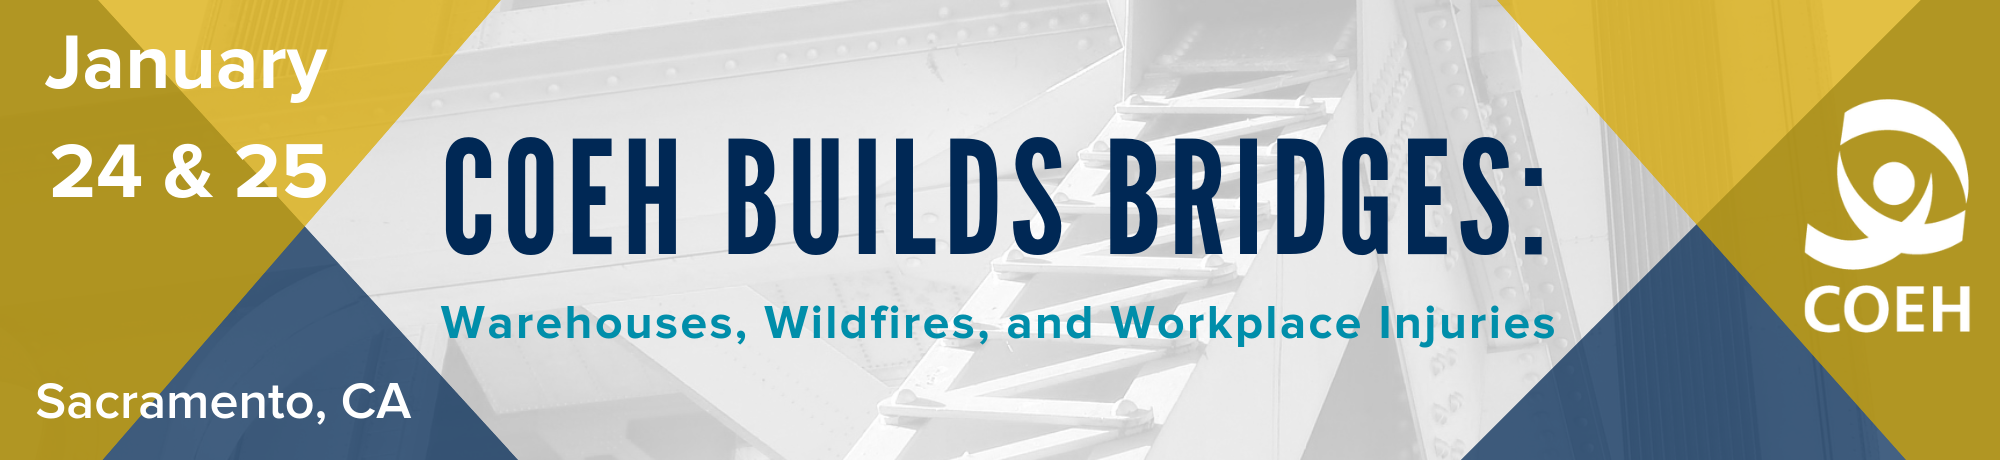 COEH Builds Bridges: Warehouses. Wildfires, and workplace injuries January 24 and 25 2020 in Sacramento California